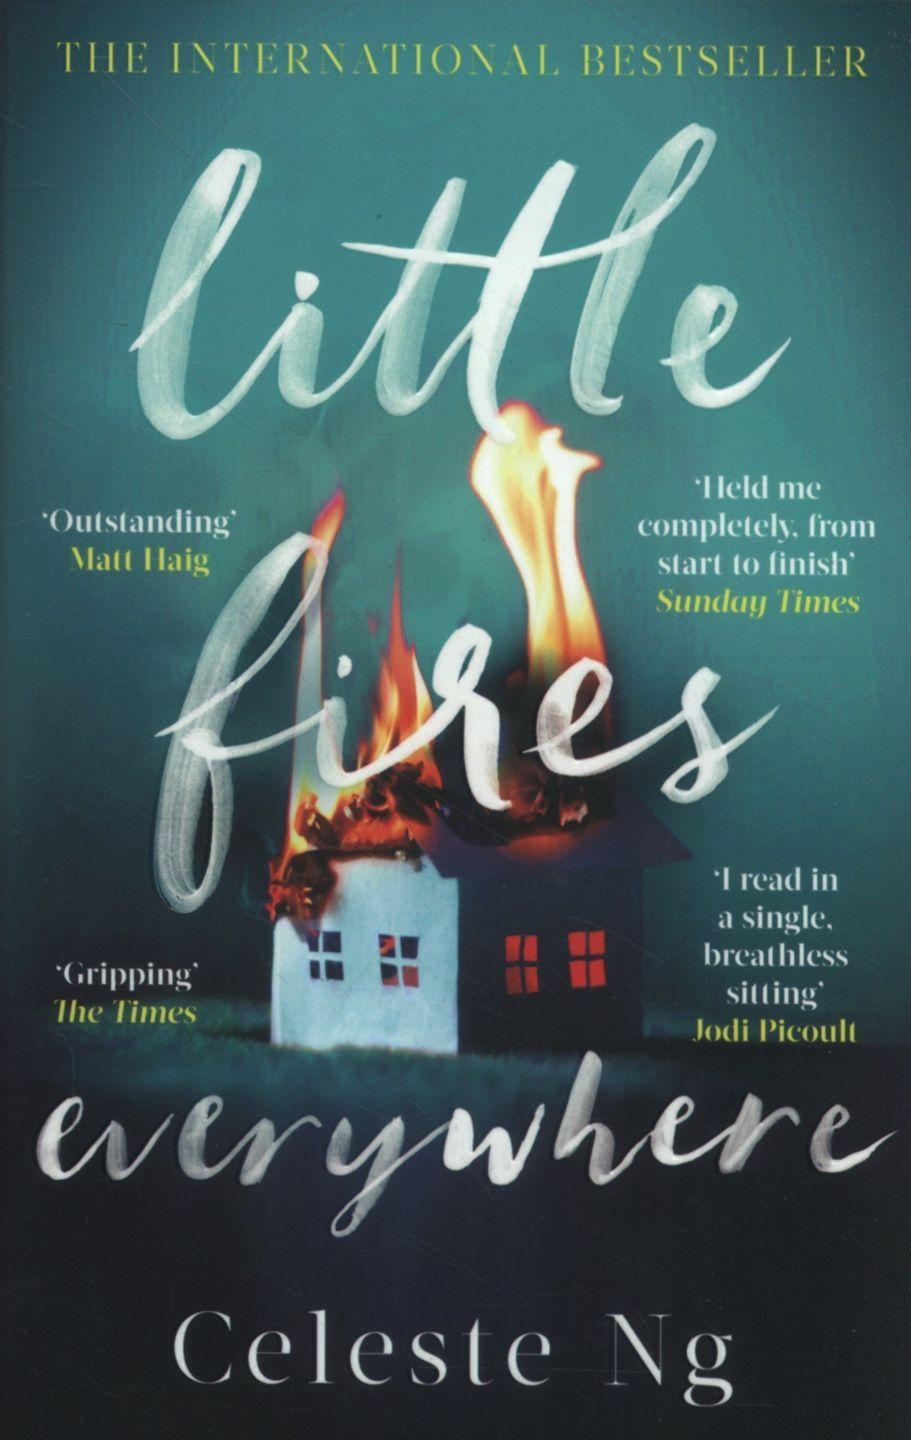 "<p>Following in the footsteps of Big Little Lies, Celeste Ng's Little Fires Everywhere has been turned into a television miniseries starring Reese Witherspoon and that can only mean one thing - the book is definitely worth a read. <br></p><p><a class=""link rapid-noclick-resp"" href=""https://www.amazon.co.uk/Little-Fires-Everywhere-Times-Bestseller/dp/0349142920/ref=sr_1_1?crid=1PYYXE1F4JV8U&dchild=1&keywords=little+fires+everywhere&qid=1586949329&s=books&sprefix=LITTLE+FIRED+EVERY%2Cstripbooks%2C183&sr=1-1&tag=hearstuk-yahoo-21&ascsubtag=%5Bartid%7C1921.g.32141605%5Bsrc%7Cyahoo-uk"" rel=""nofollow noopener"" target=""_blank"" data-ylk=""slk:SHOP NOW"">SHOP NOW</a></p>"